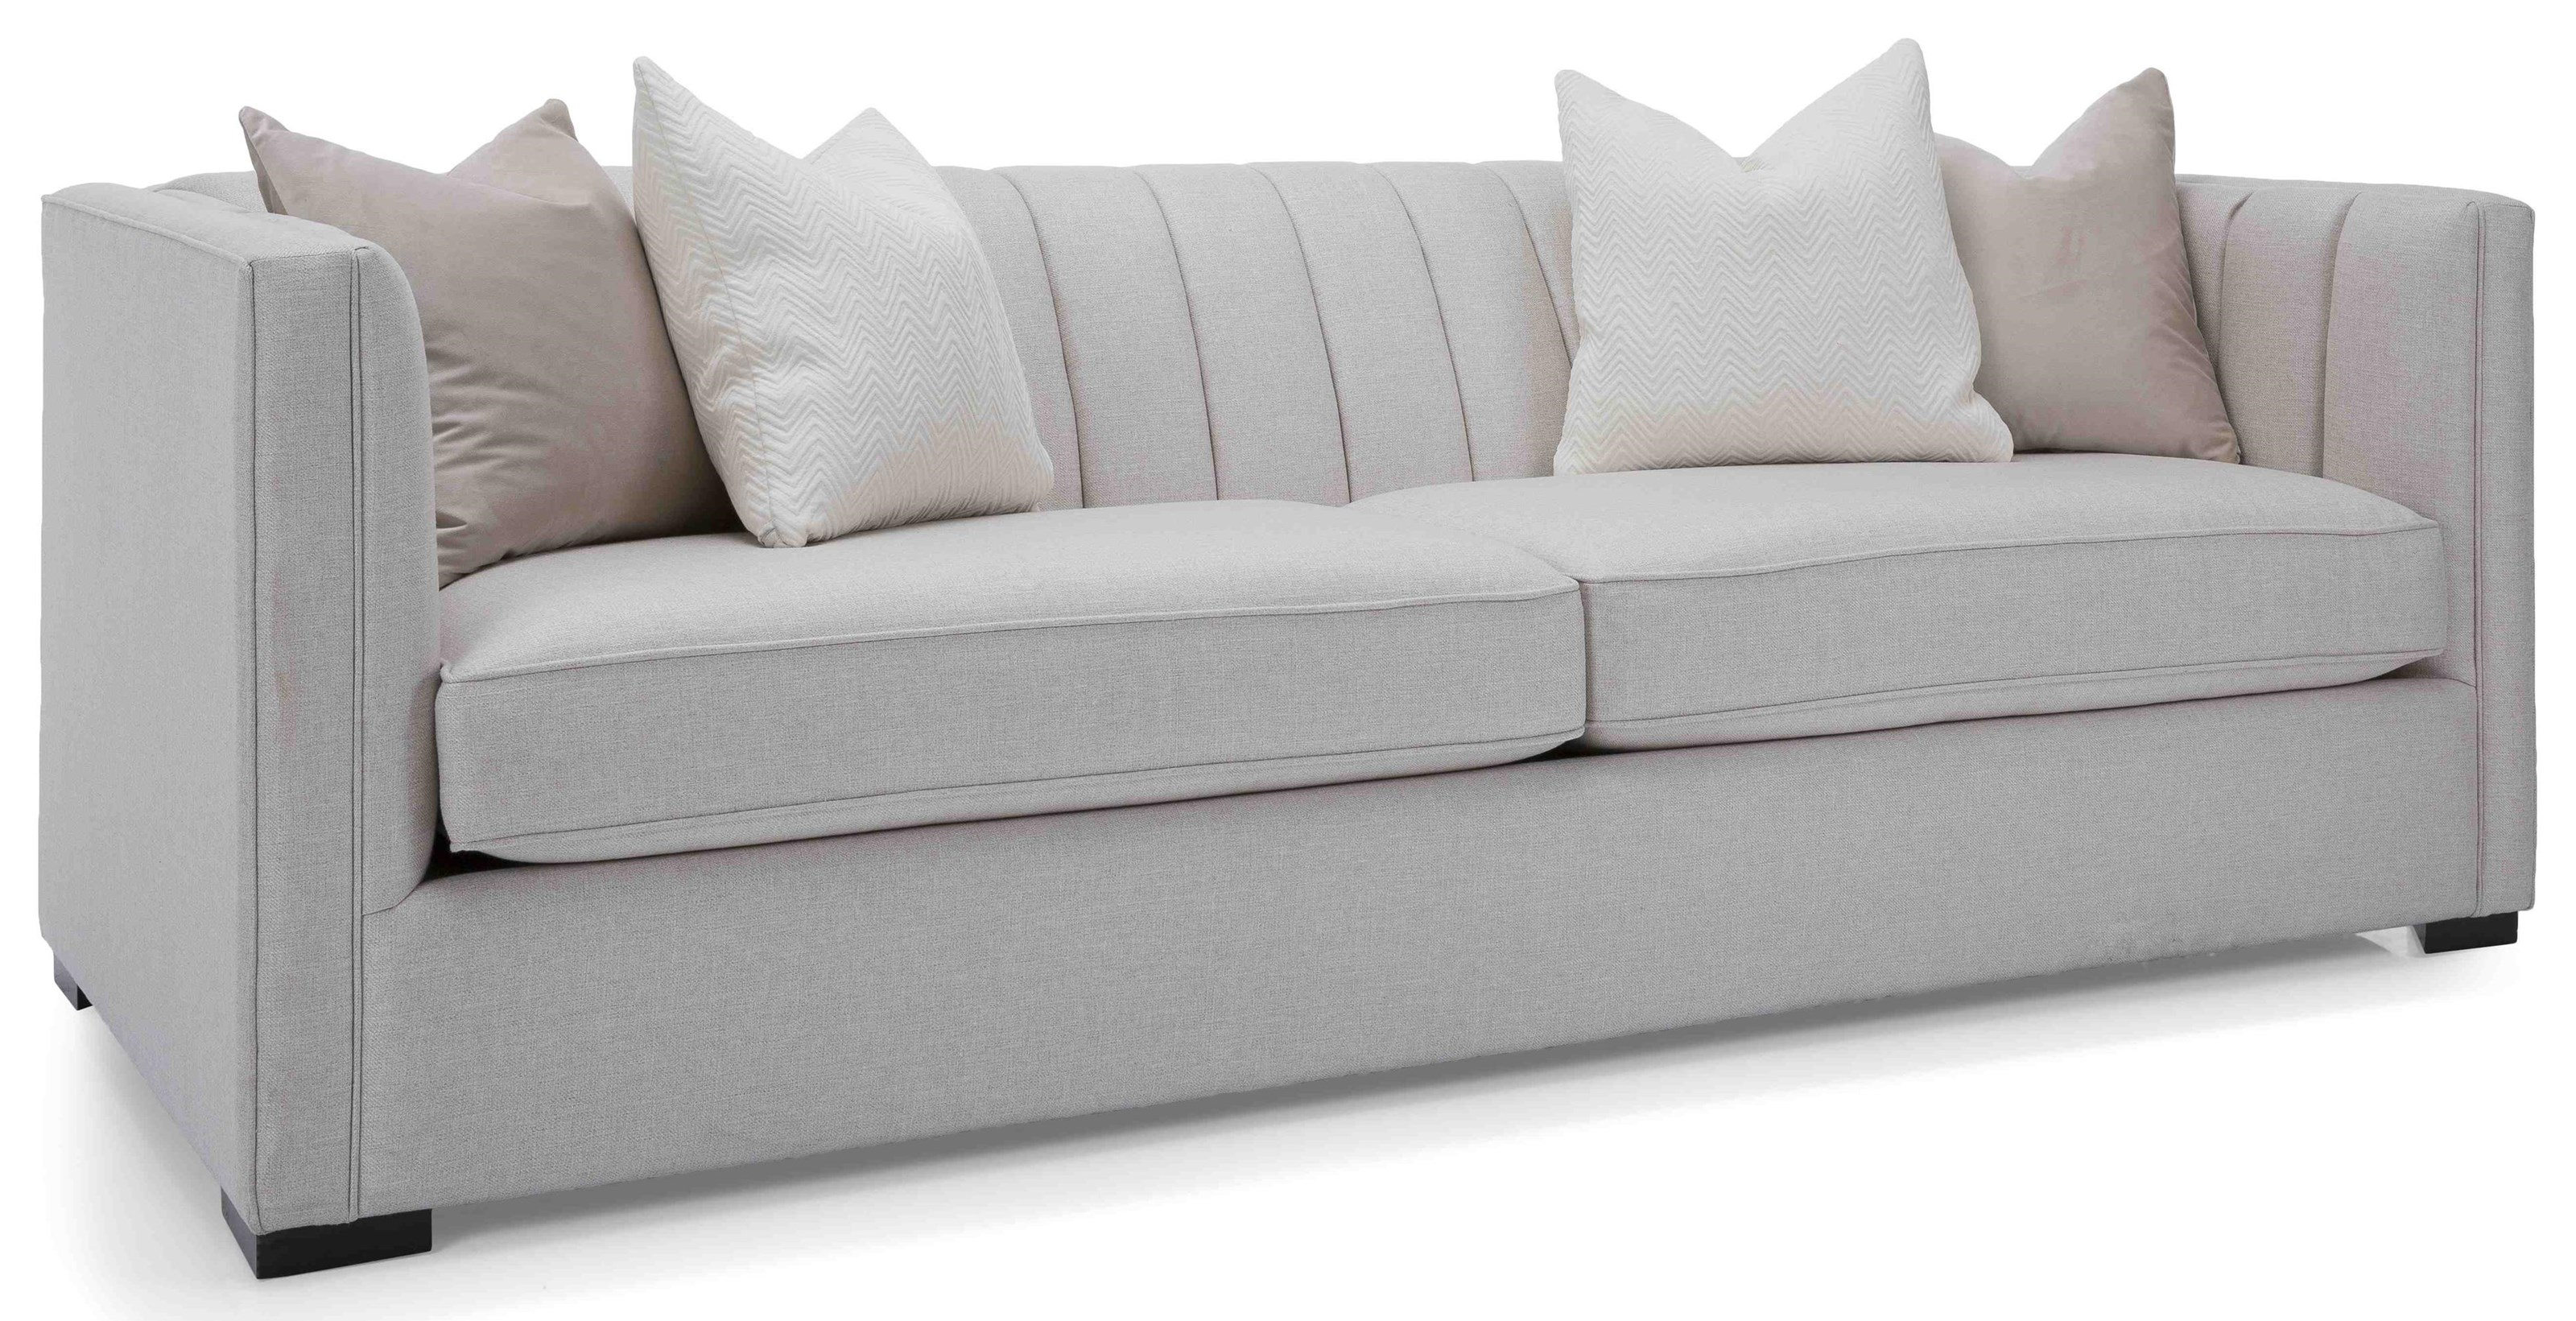 7712 Sofa Sofa by Taelor Designs at Bennett's Furniture and Mattresses